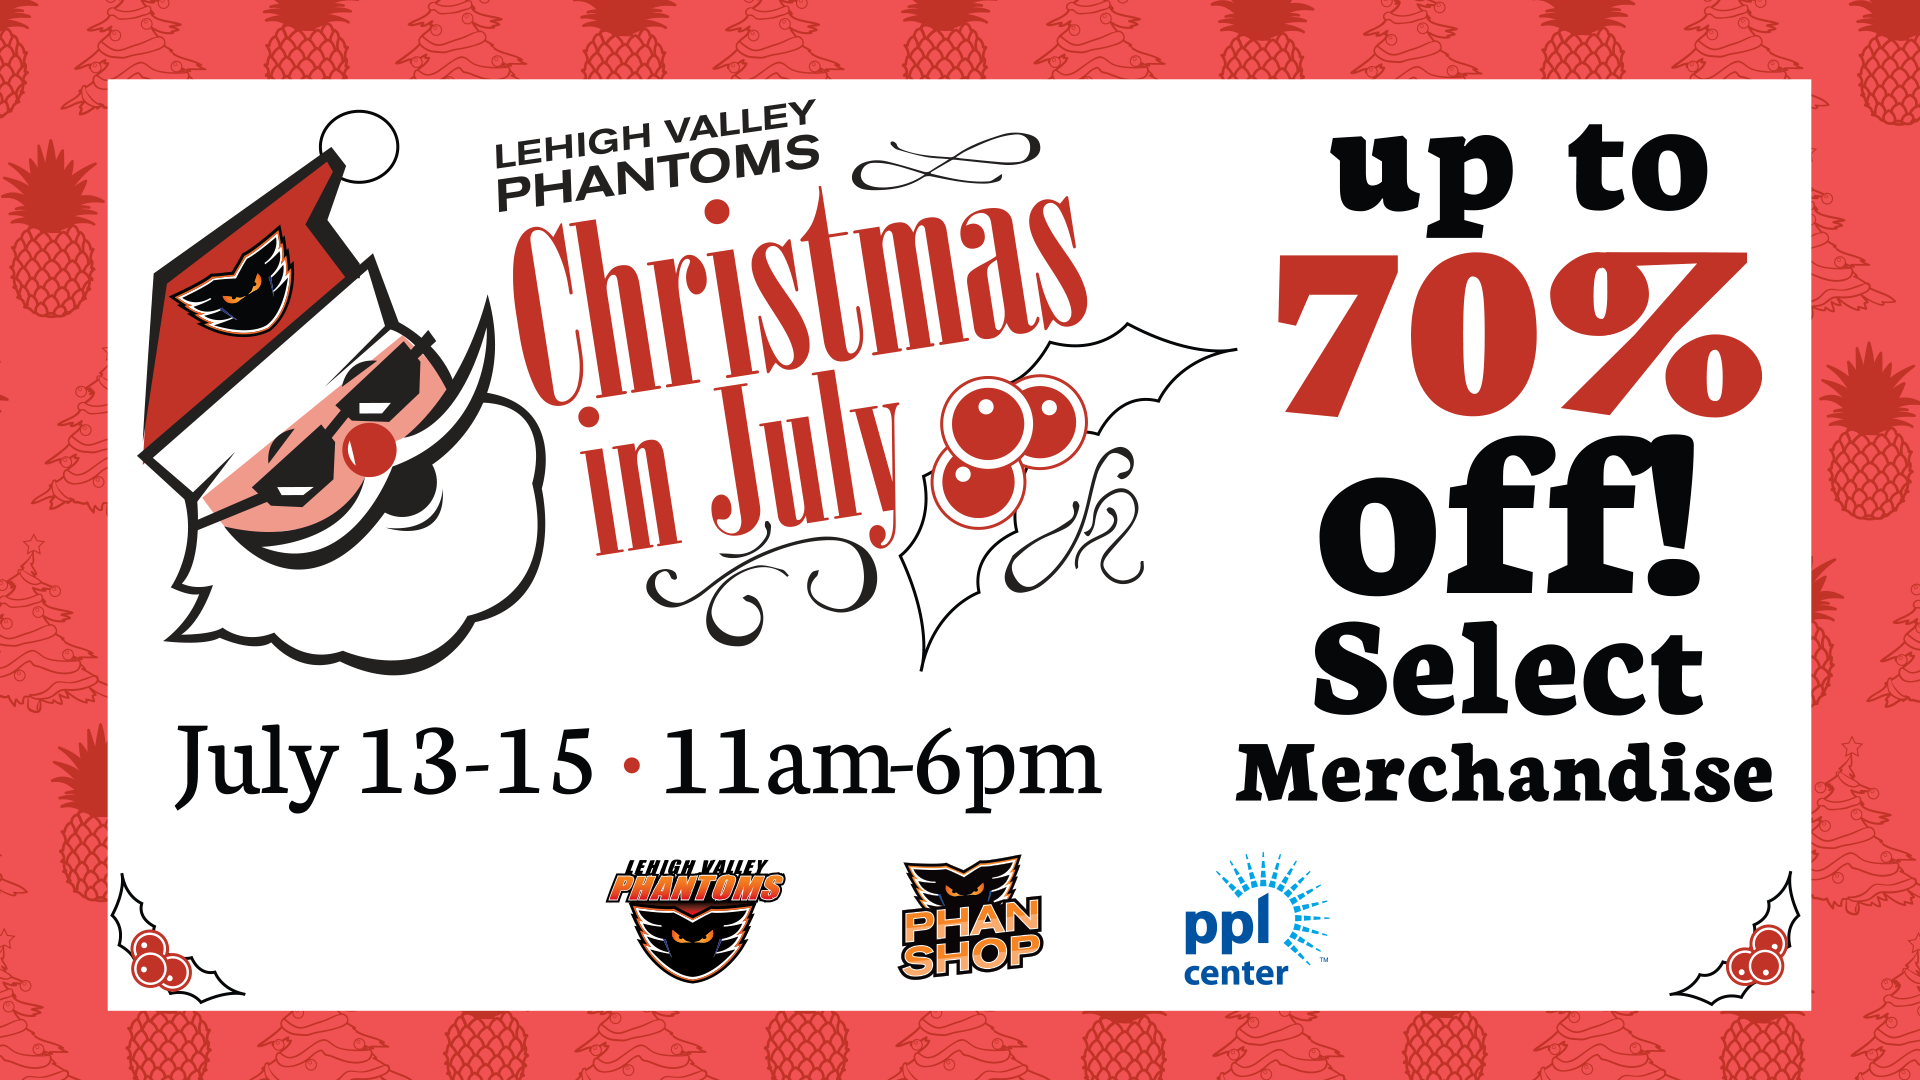 Christmas In July @ PPL Center - July 13-15, 11 AM - 6 PM